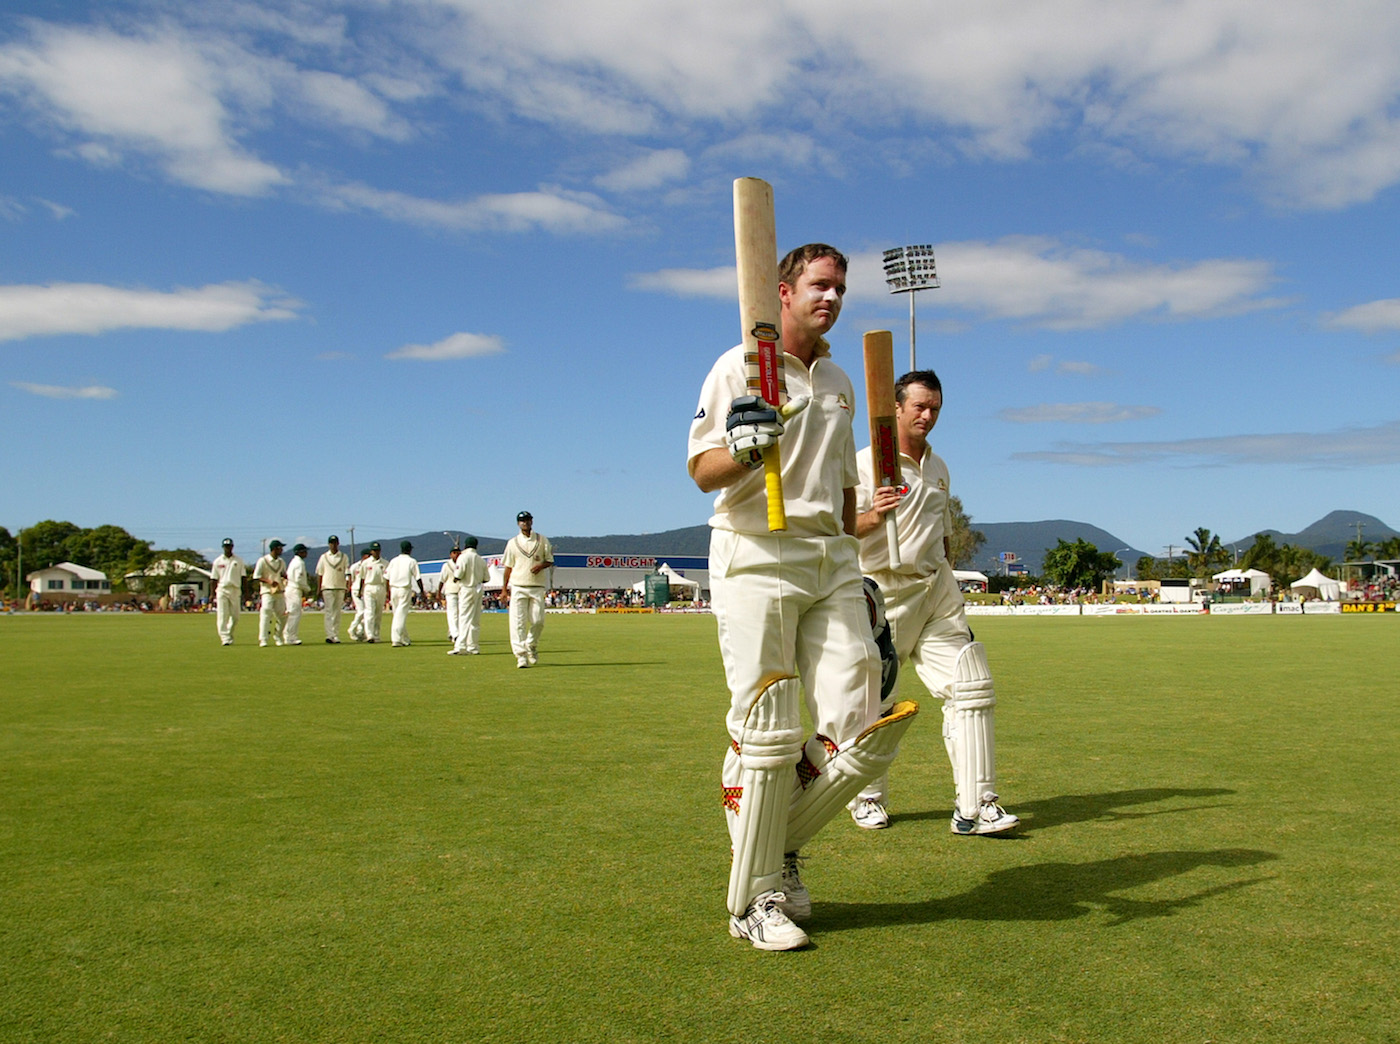 All's fair with Love and Waugh at the crease